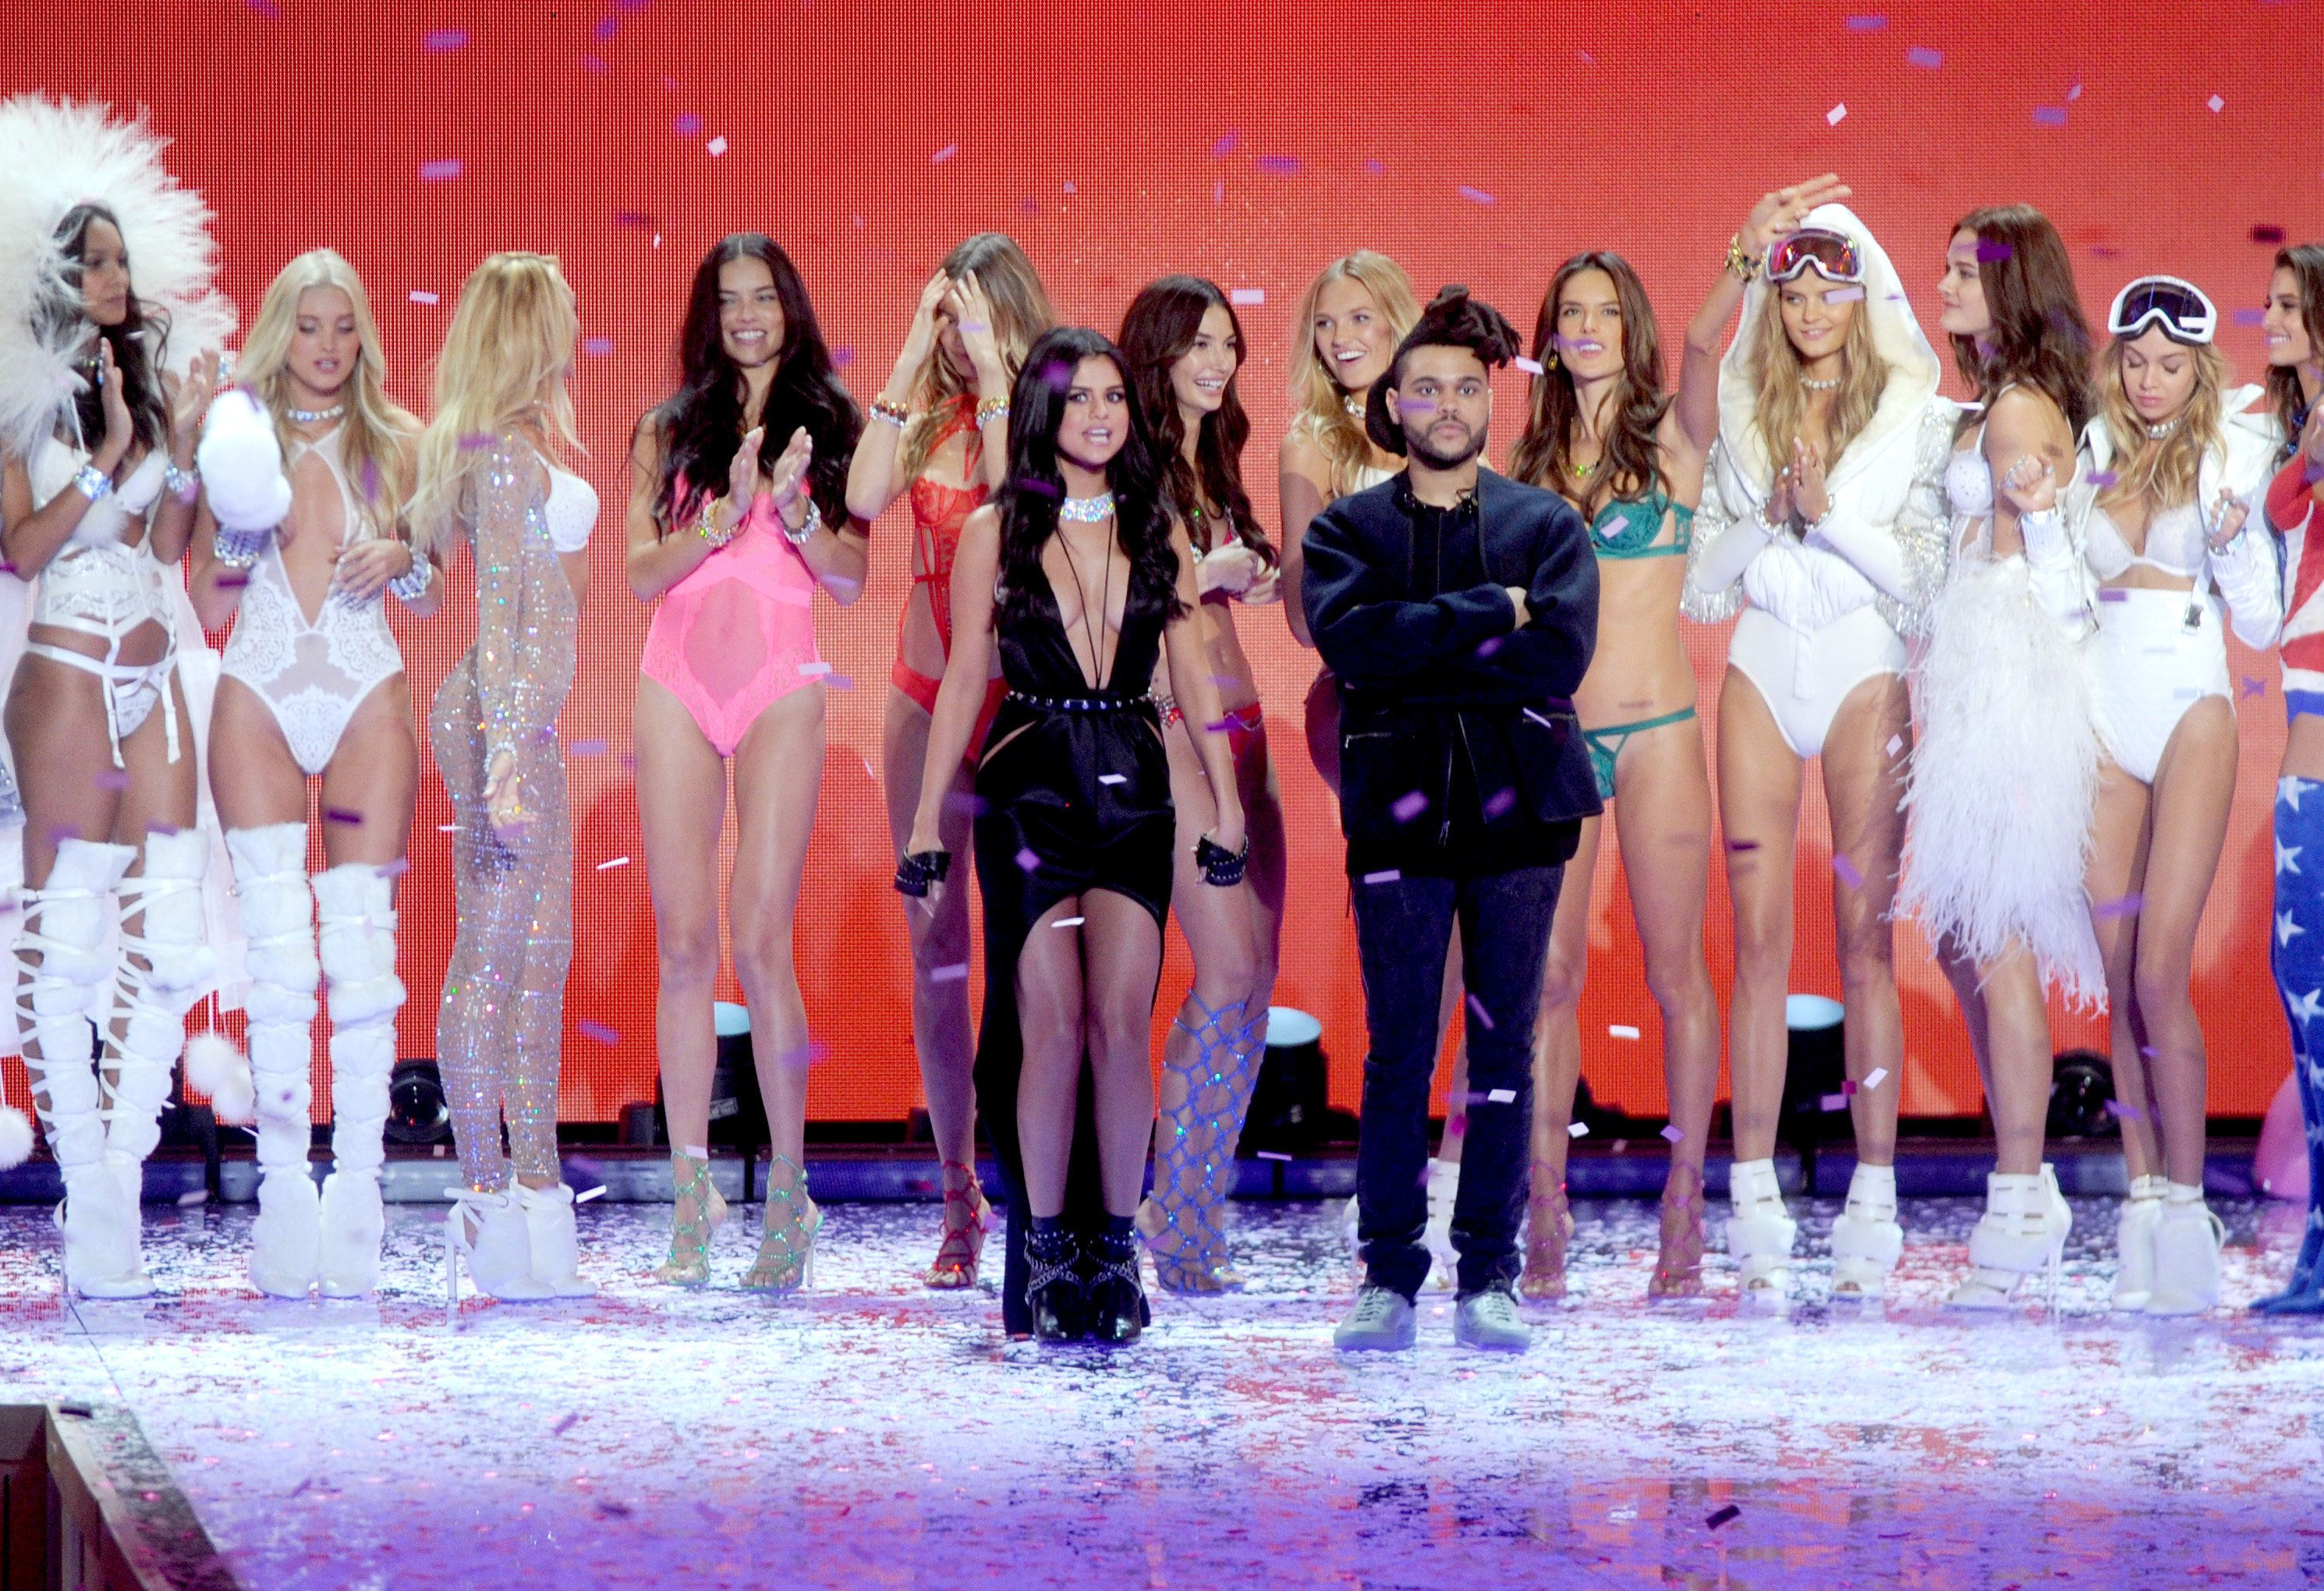 Selena Gomez and The Weeknd walking the runway during the Victoria's Secret Fashion Show at Lexington Armory in New York City, NY, USA, on November 10, 2015.